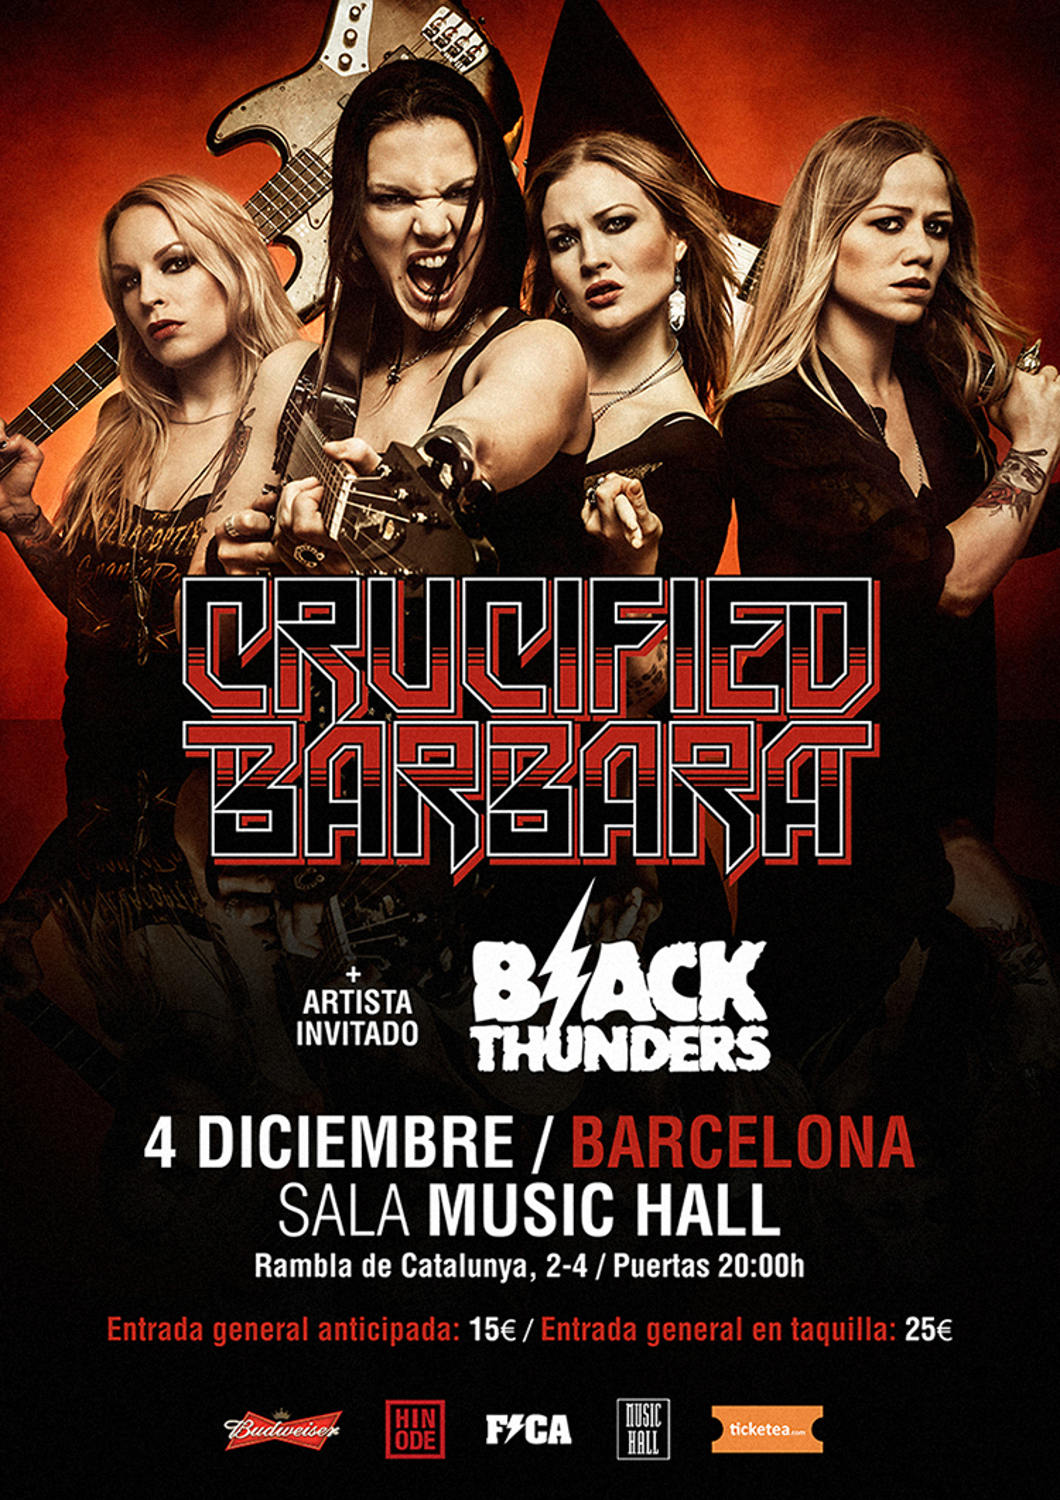 CrucifiedBarbara_BlackThunders